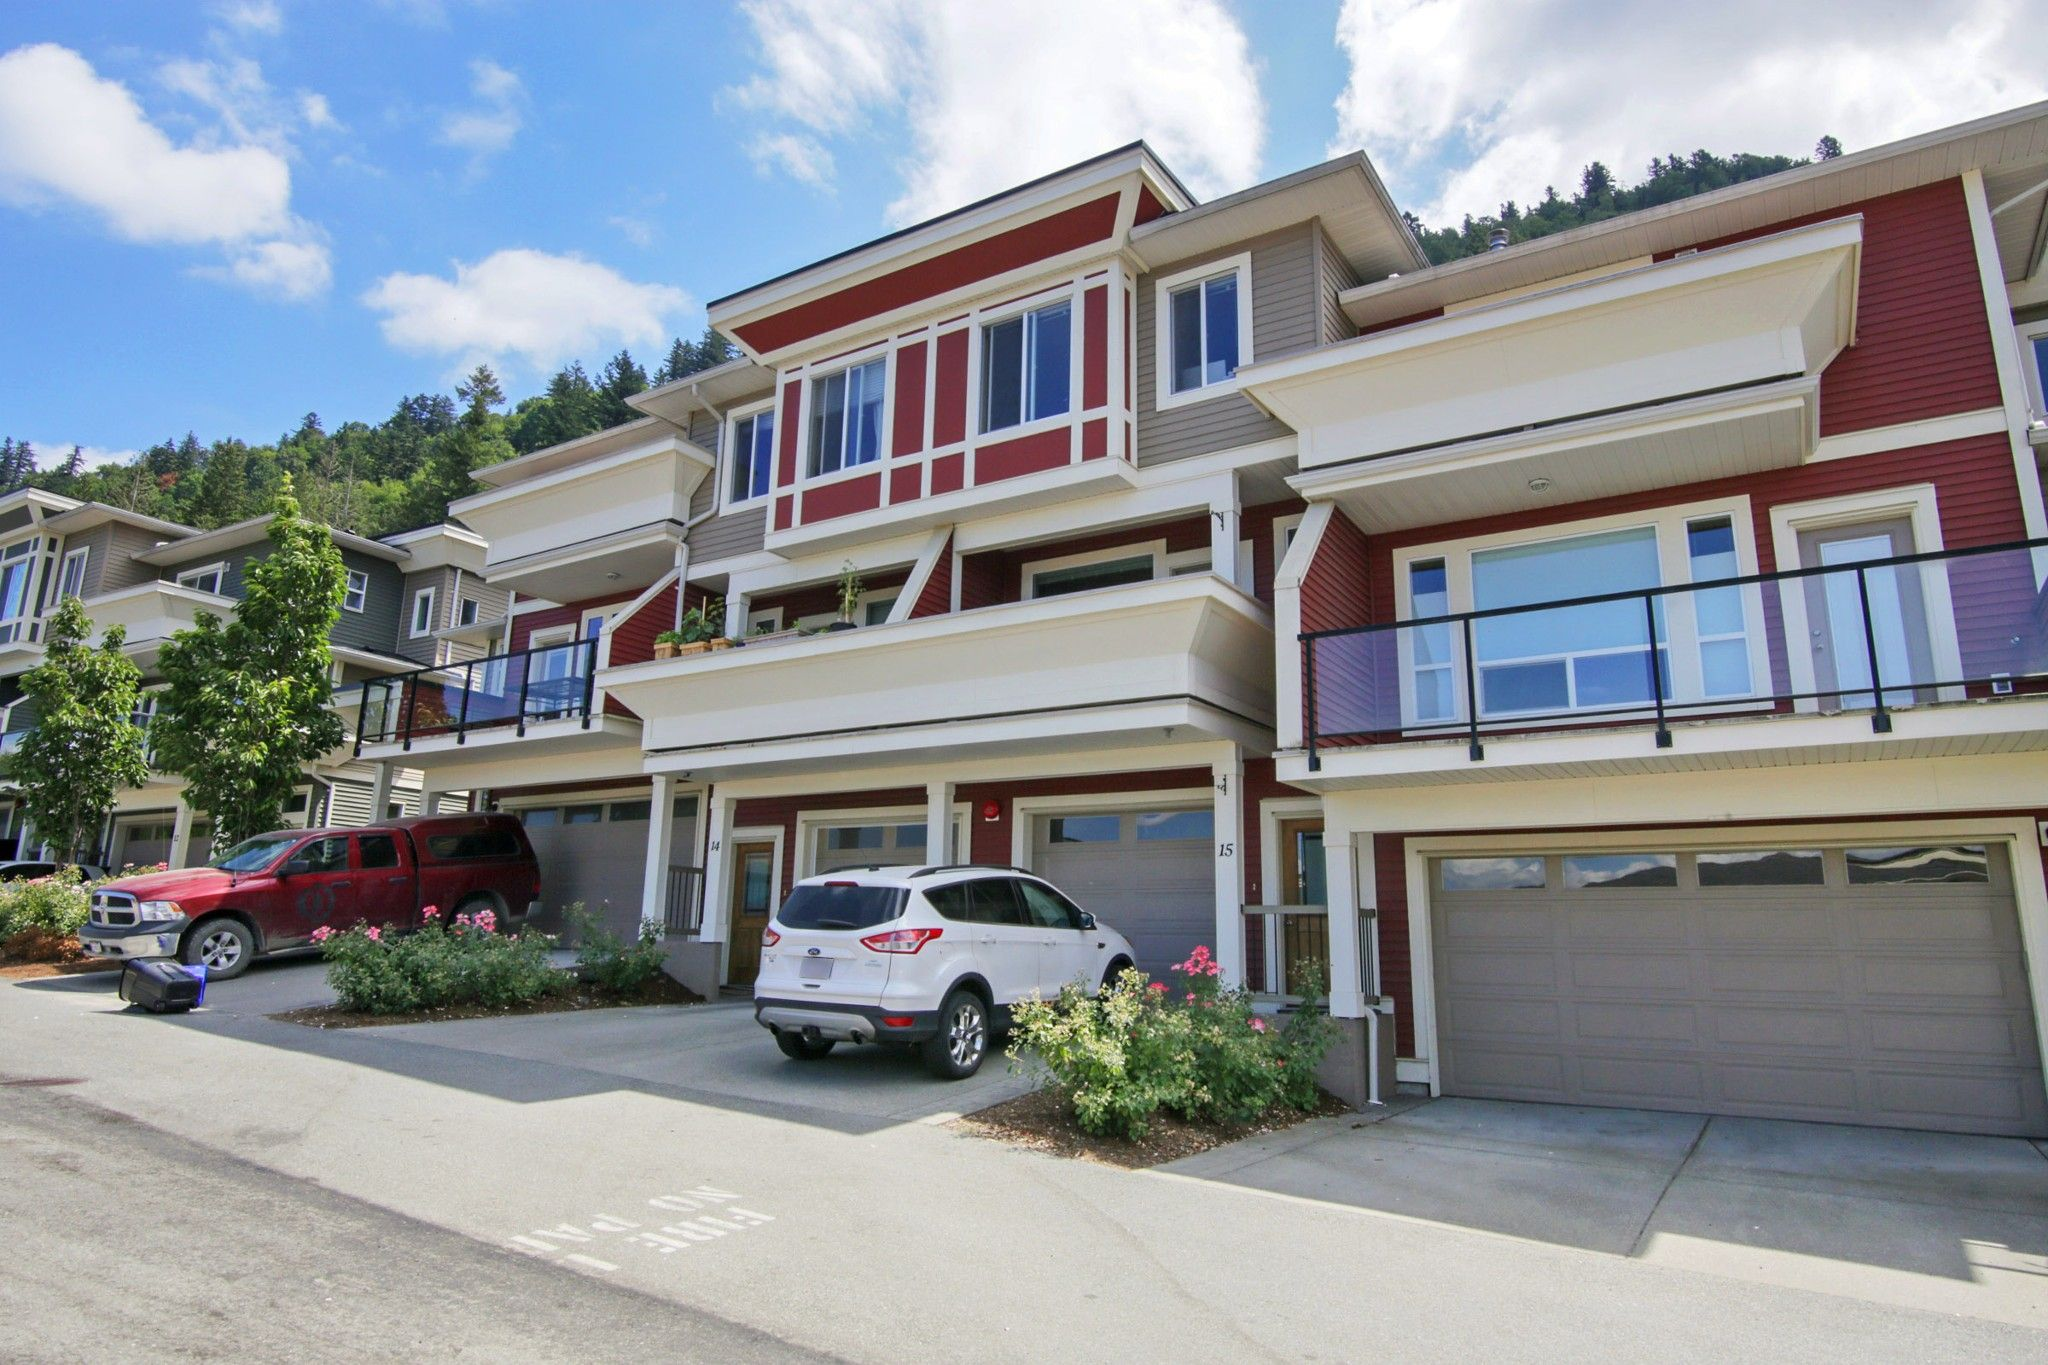 """Main Photo: 15 47315 SYLVAN Drive in Chilliwack: Promontory Townhouse for sale in """"The Spectrum"""" (Sardis)  : MLS®# R2604103"""